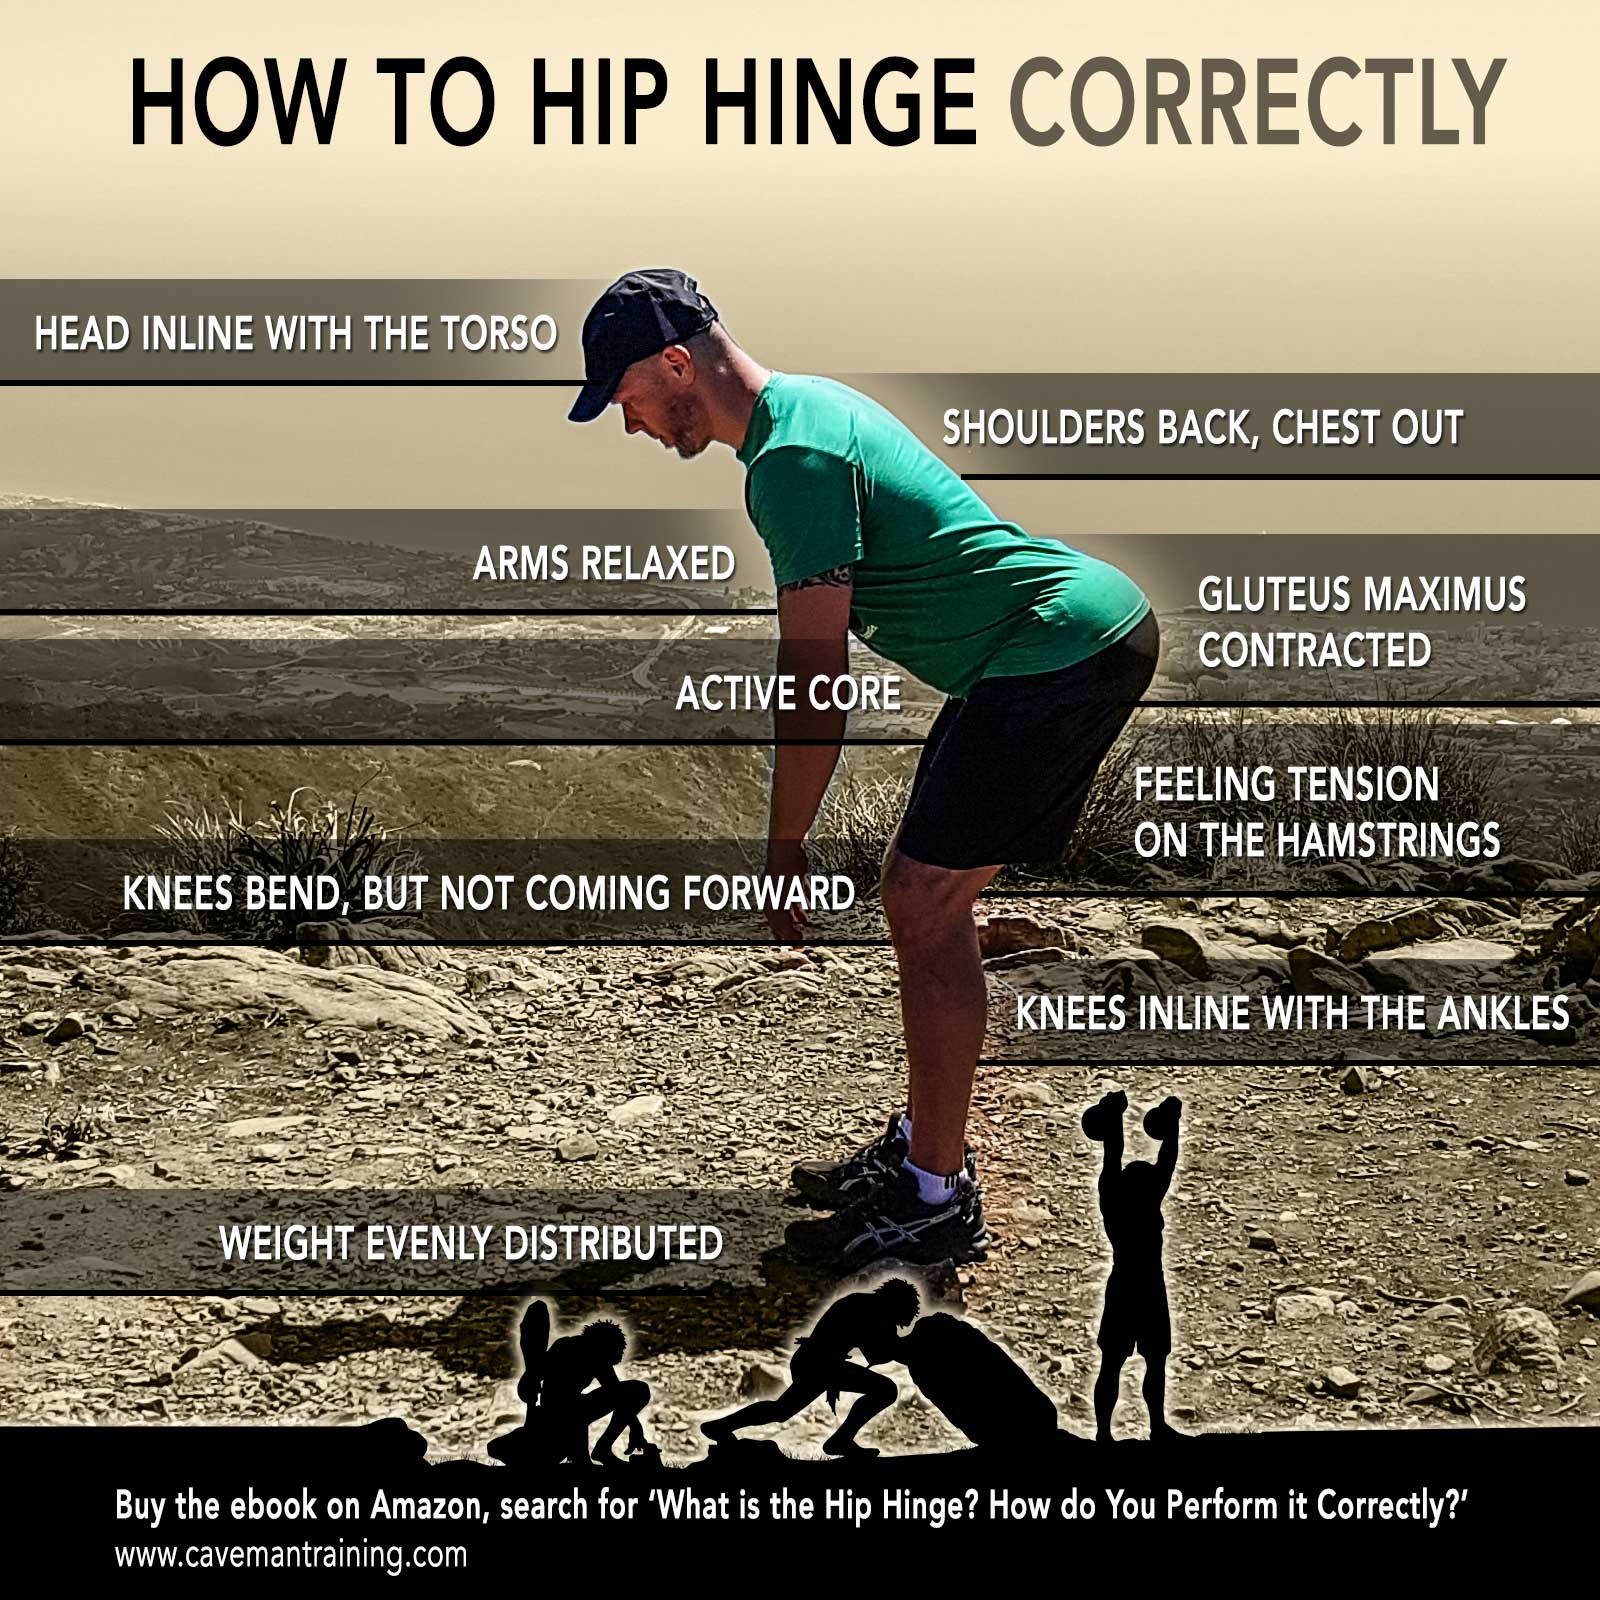 True And Clear Definition Of The Squat And Hip Hinge Exercise